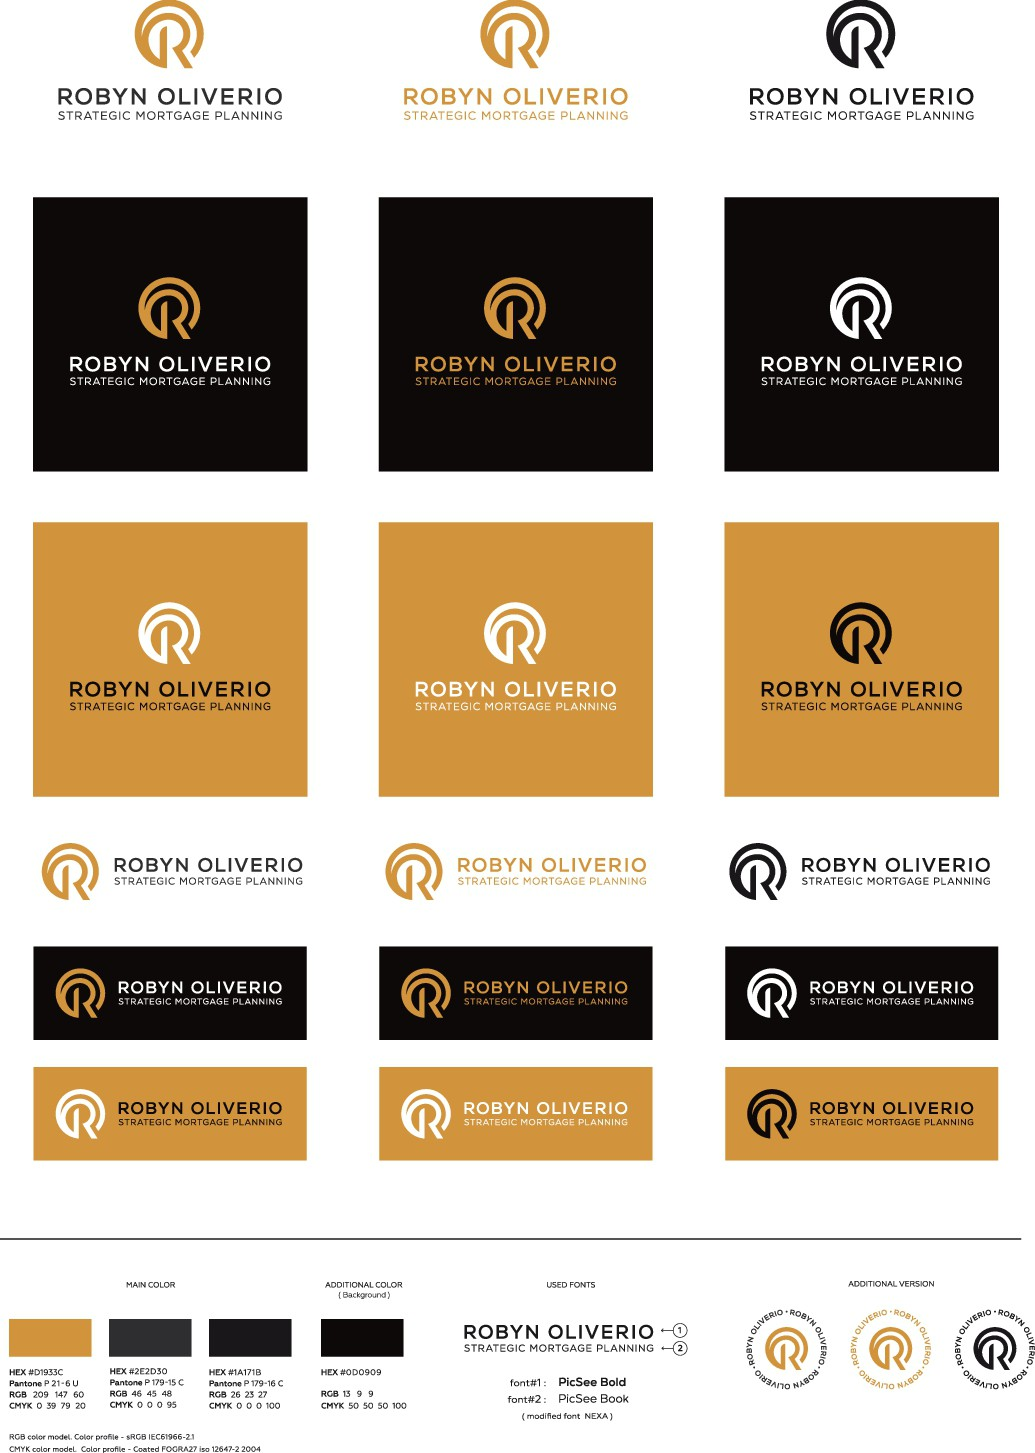 Female Mortgage Broker needs a simple professional, powerful logo designed.